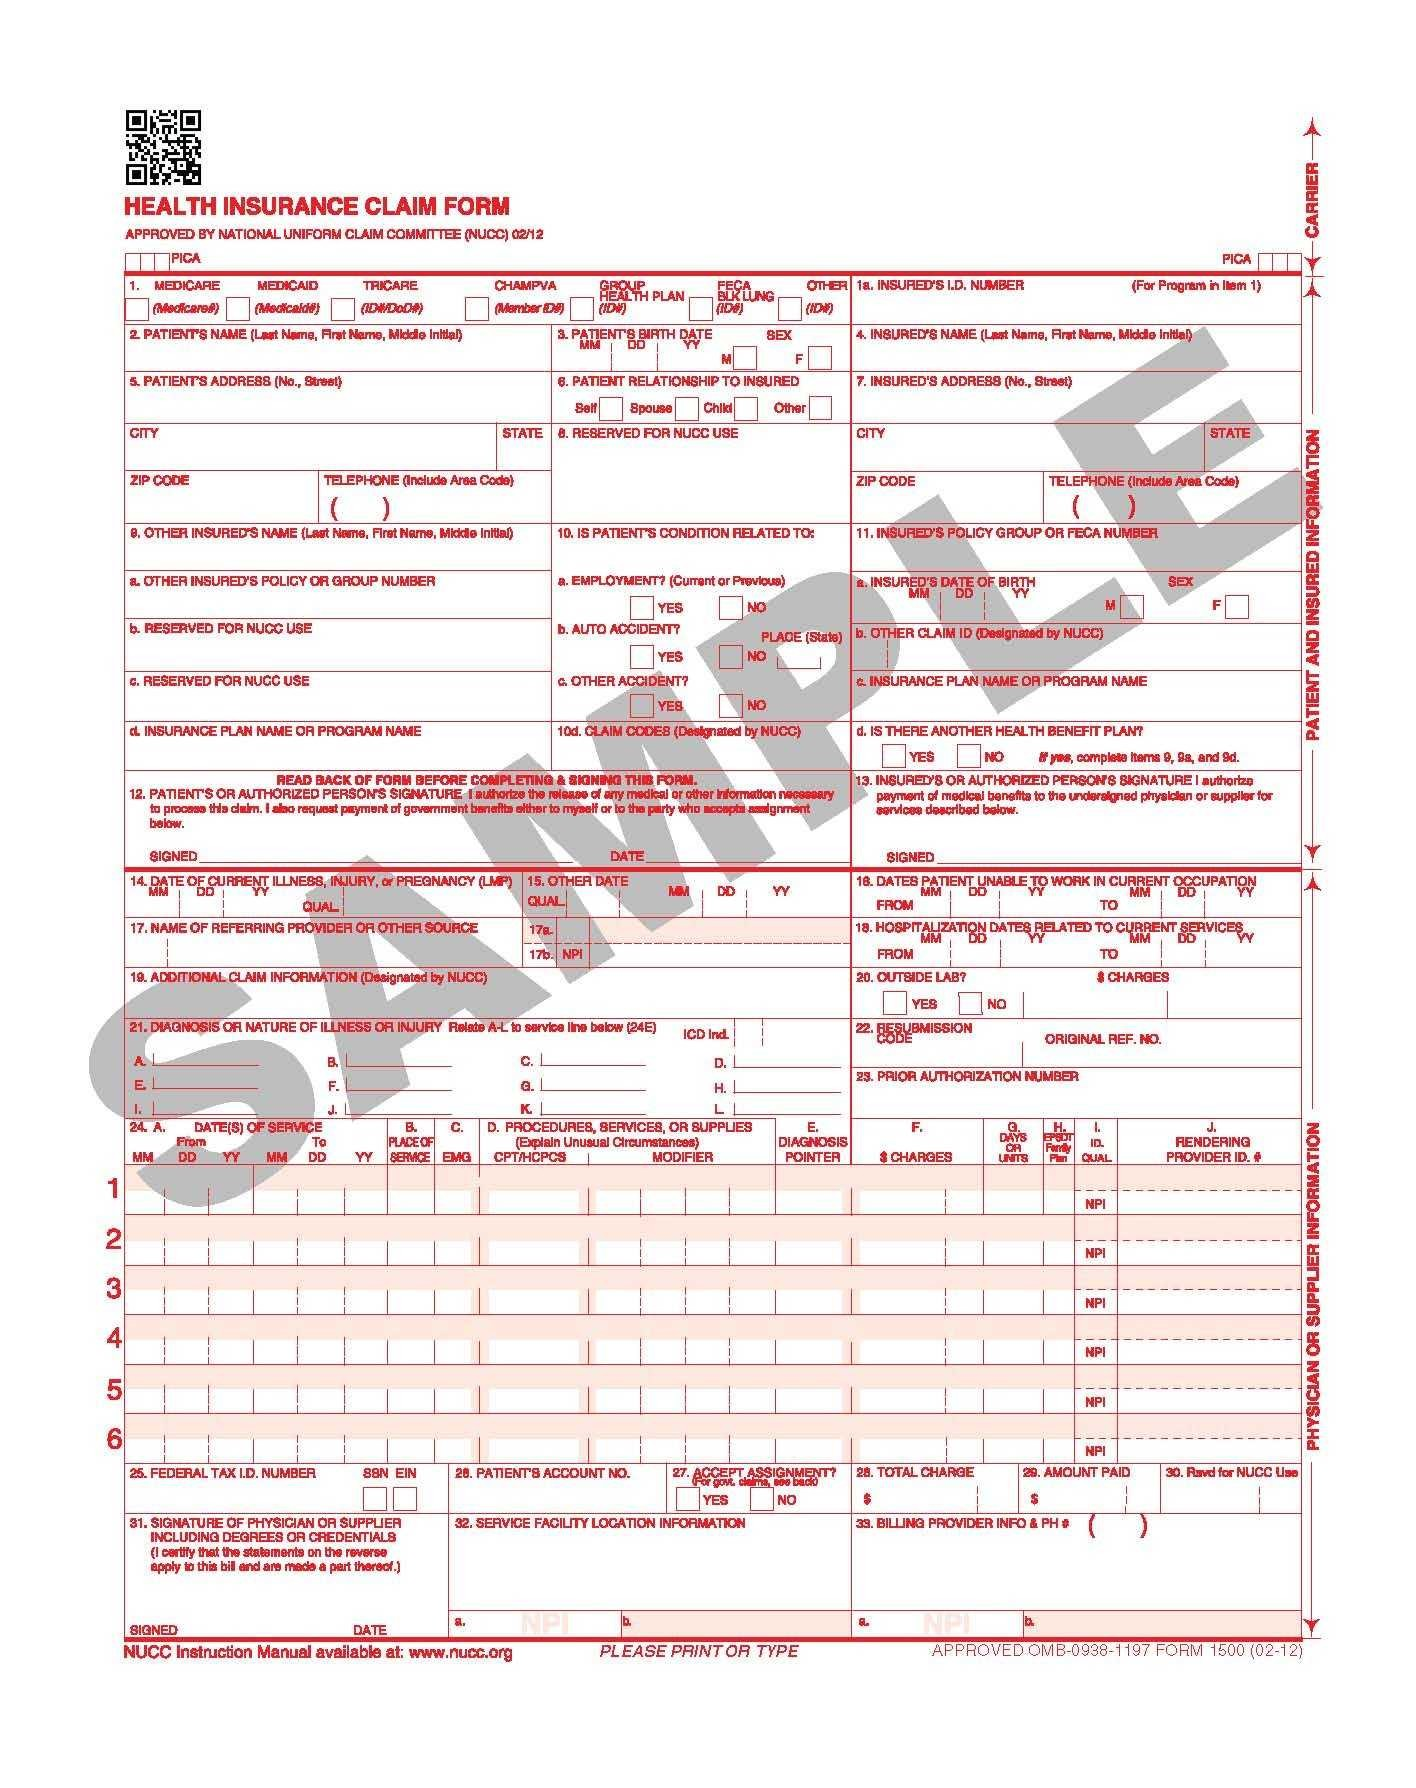 Printable Medical Claim Form Cms 1500 Sample Cms 1500 Form 02 12 As Well As 20 Unique 1500 Claim Form